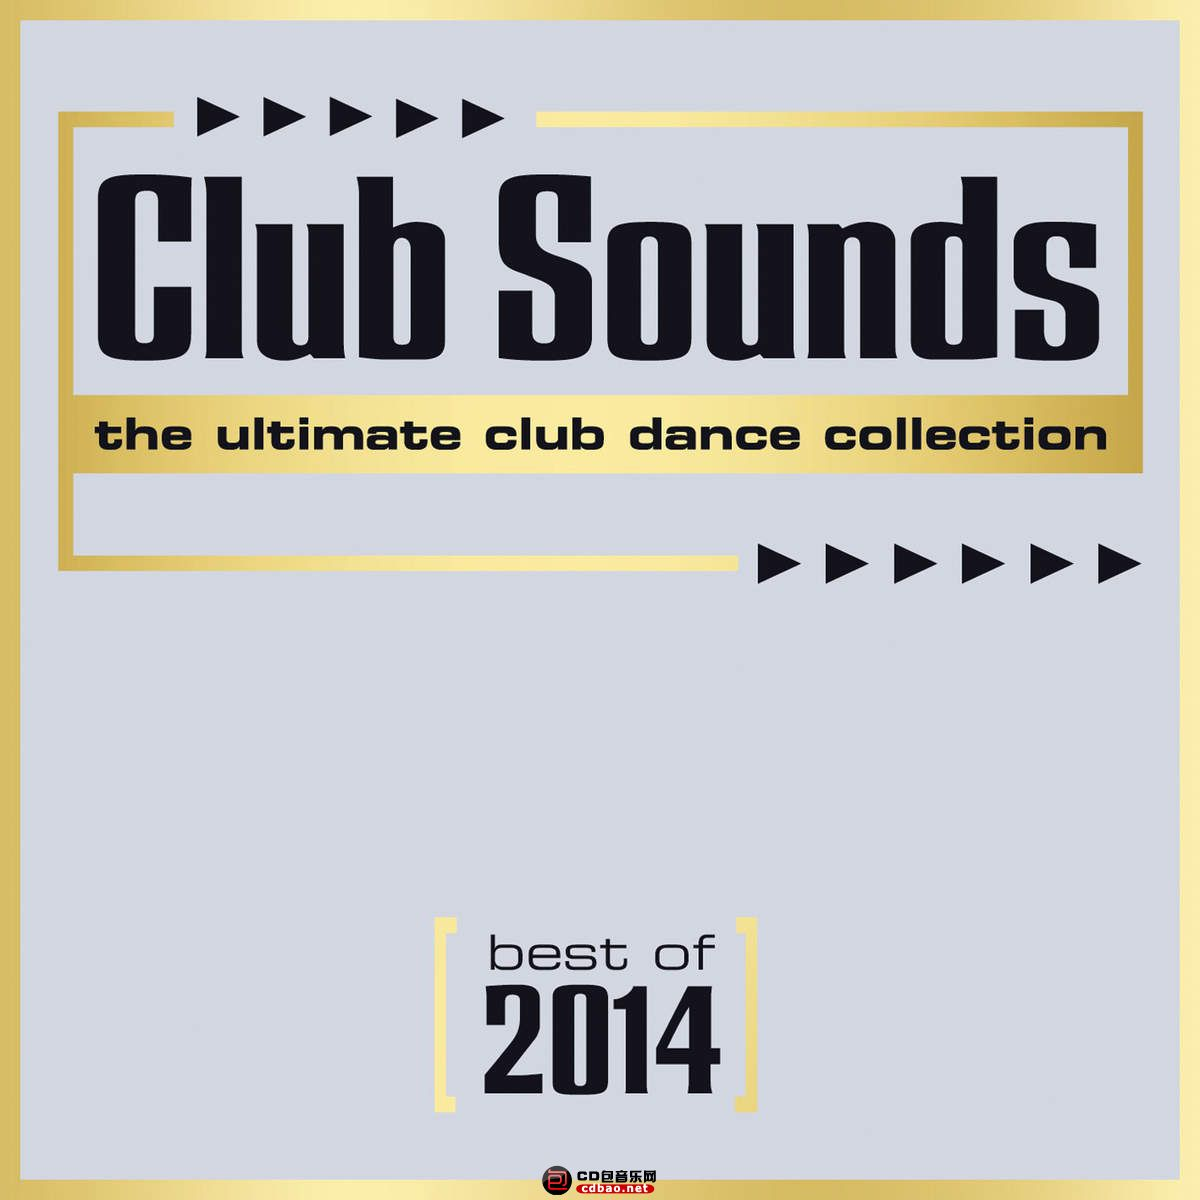 club_sounds-best_of_2014_3cd.jpg